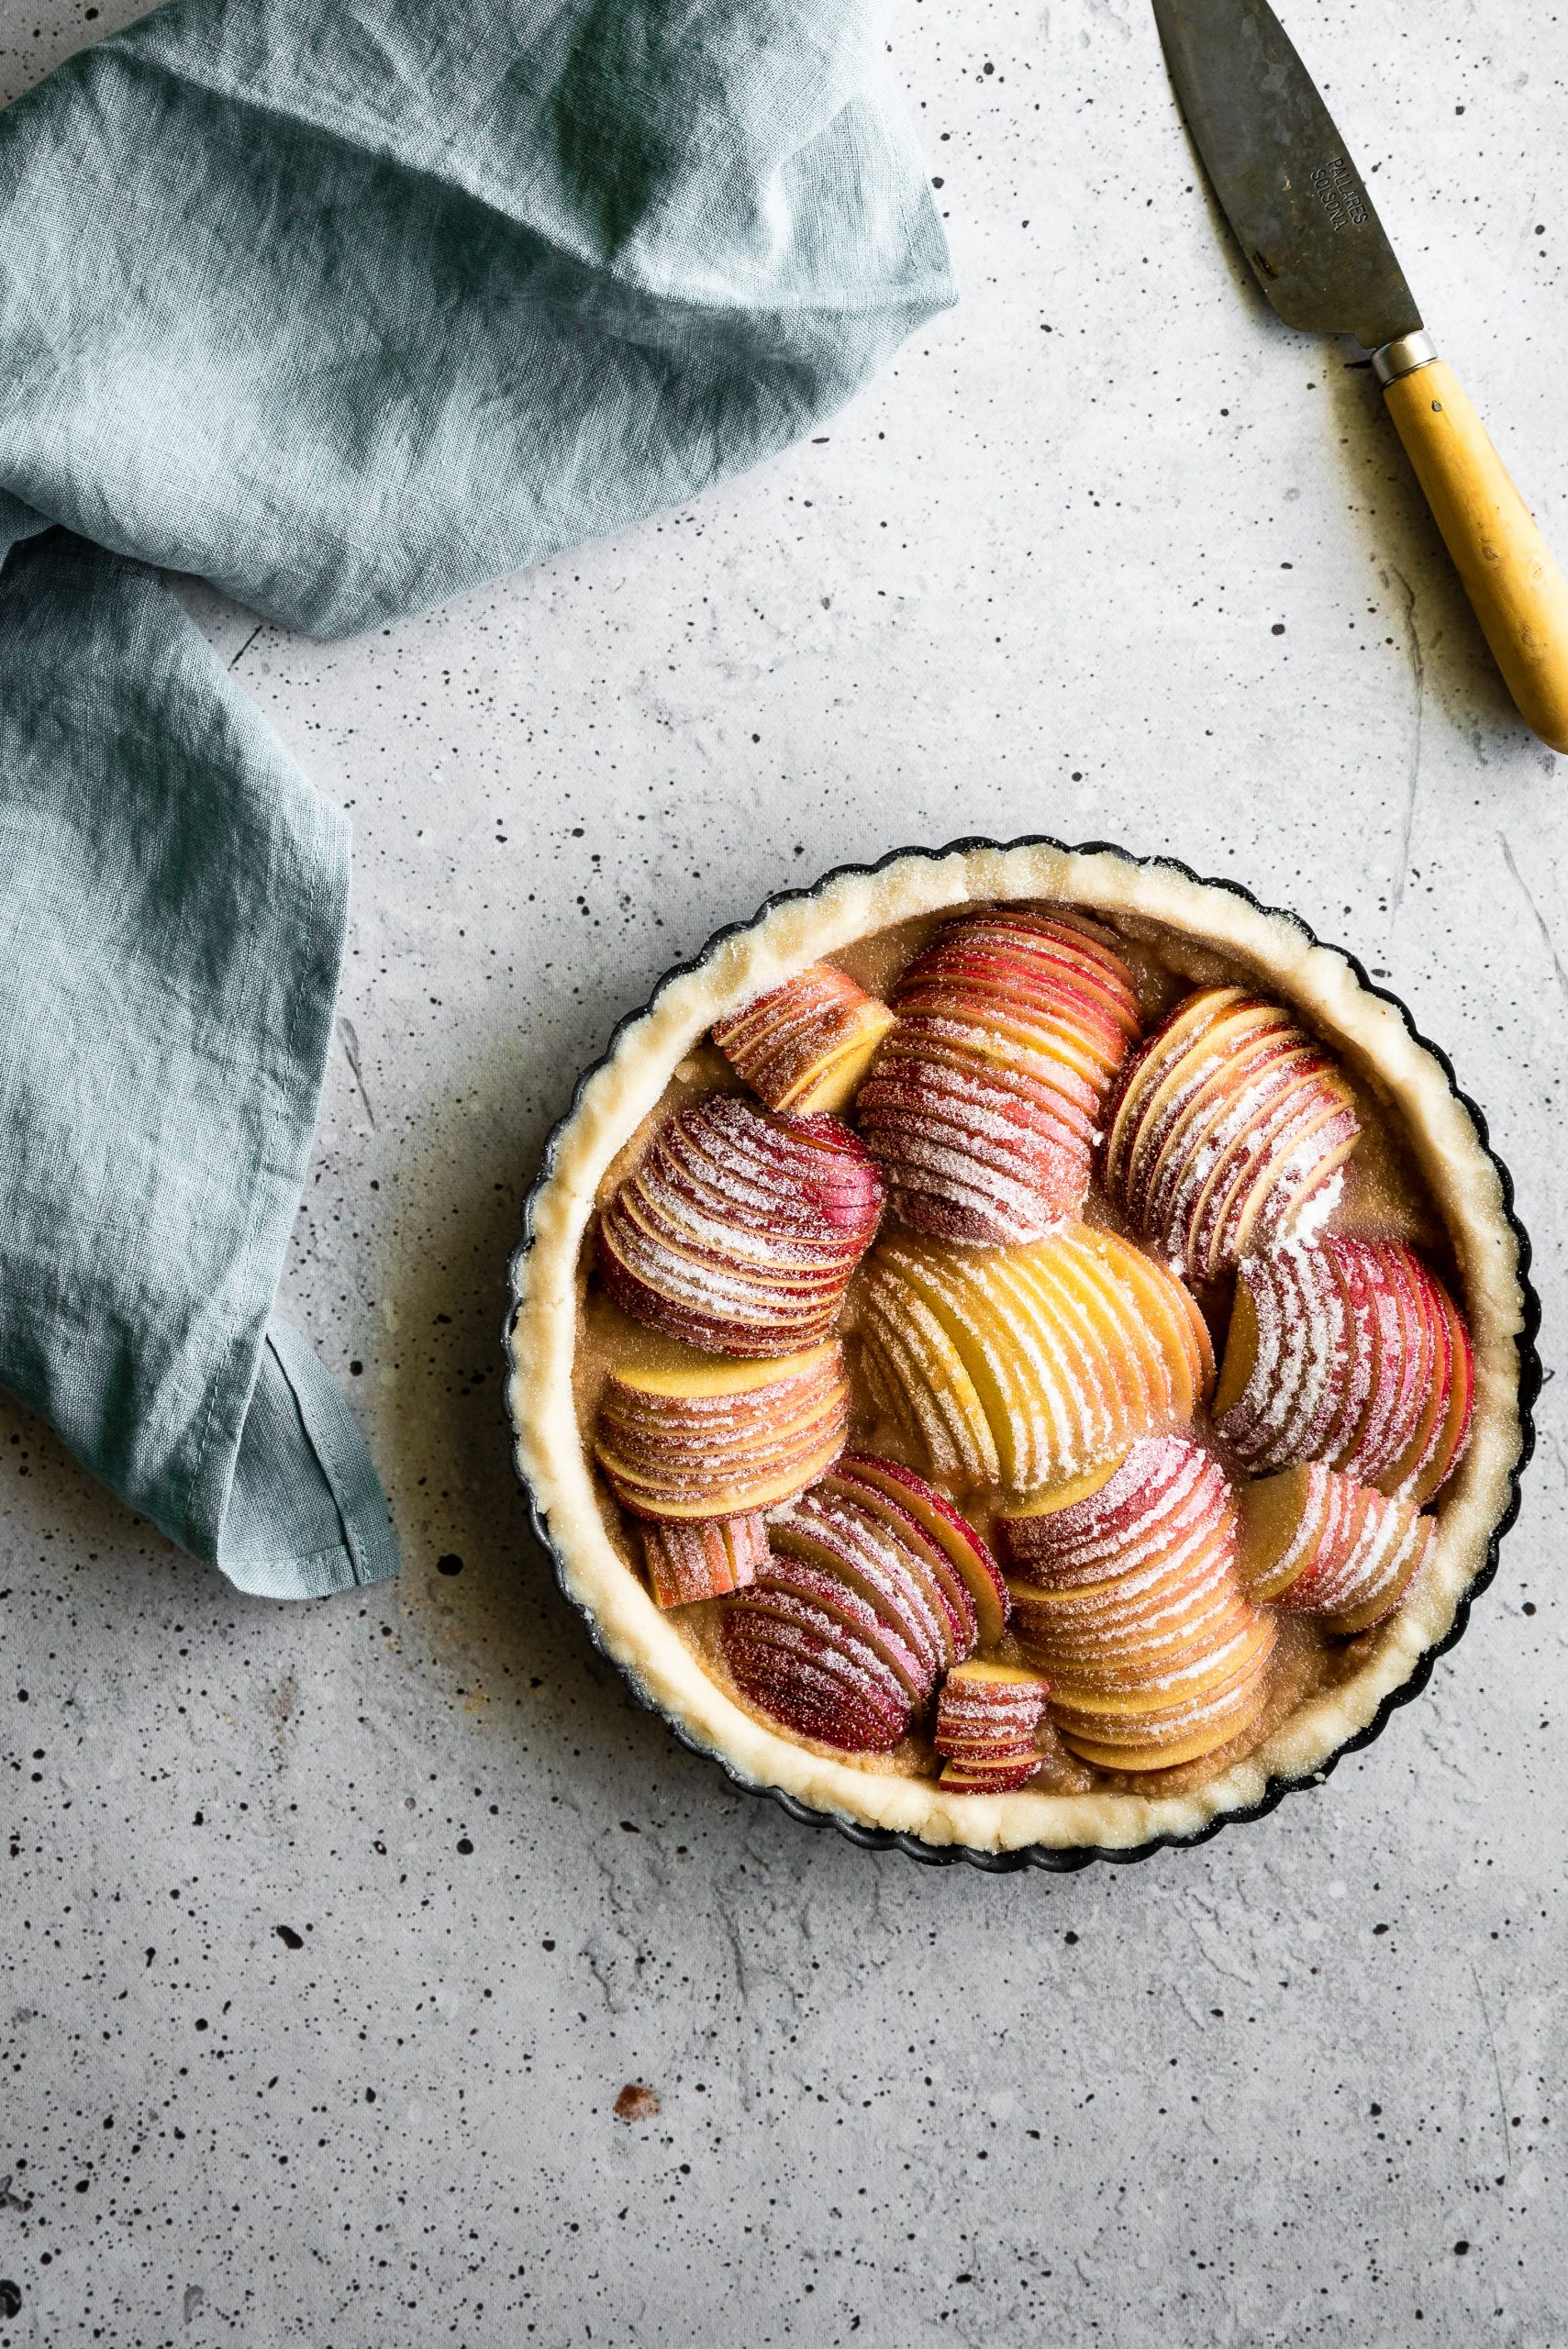 overhrad image of an unbaked apple tart with a blue linen on the left and a paring knife on the upper right.